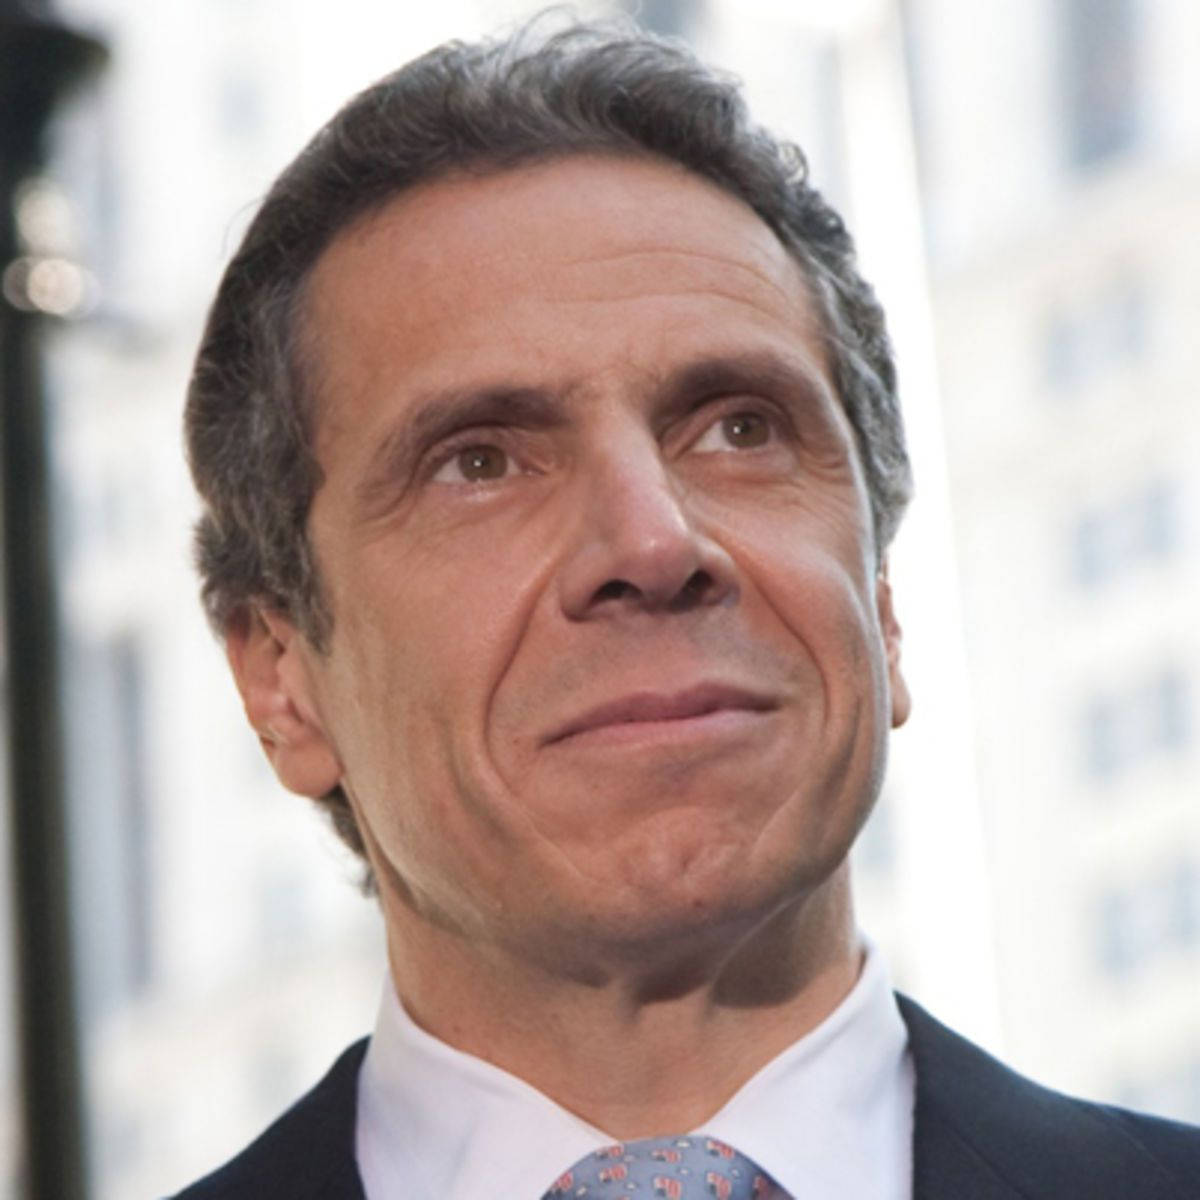 Andrew Cuomo Biography Government Official Lawyer Andrew Cuomo Chris Cuomo Andrew